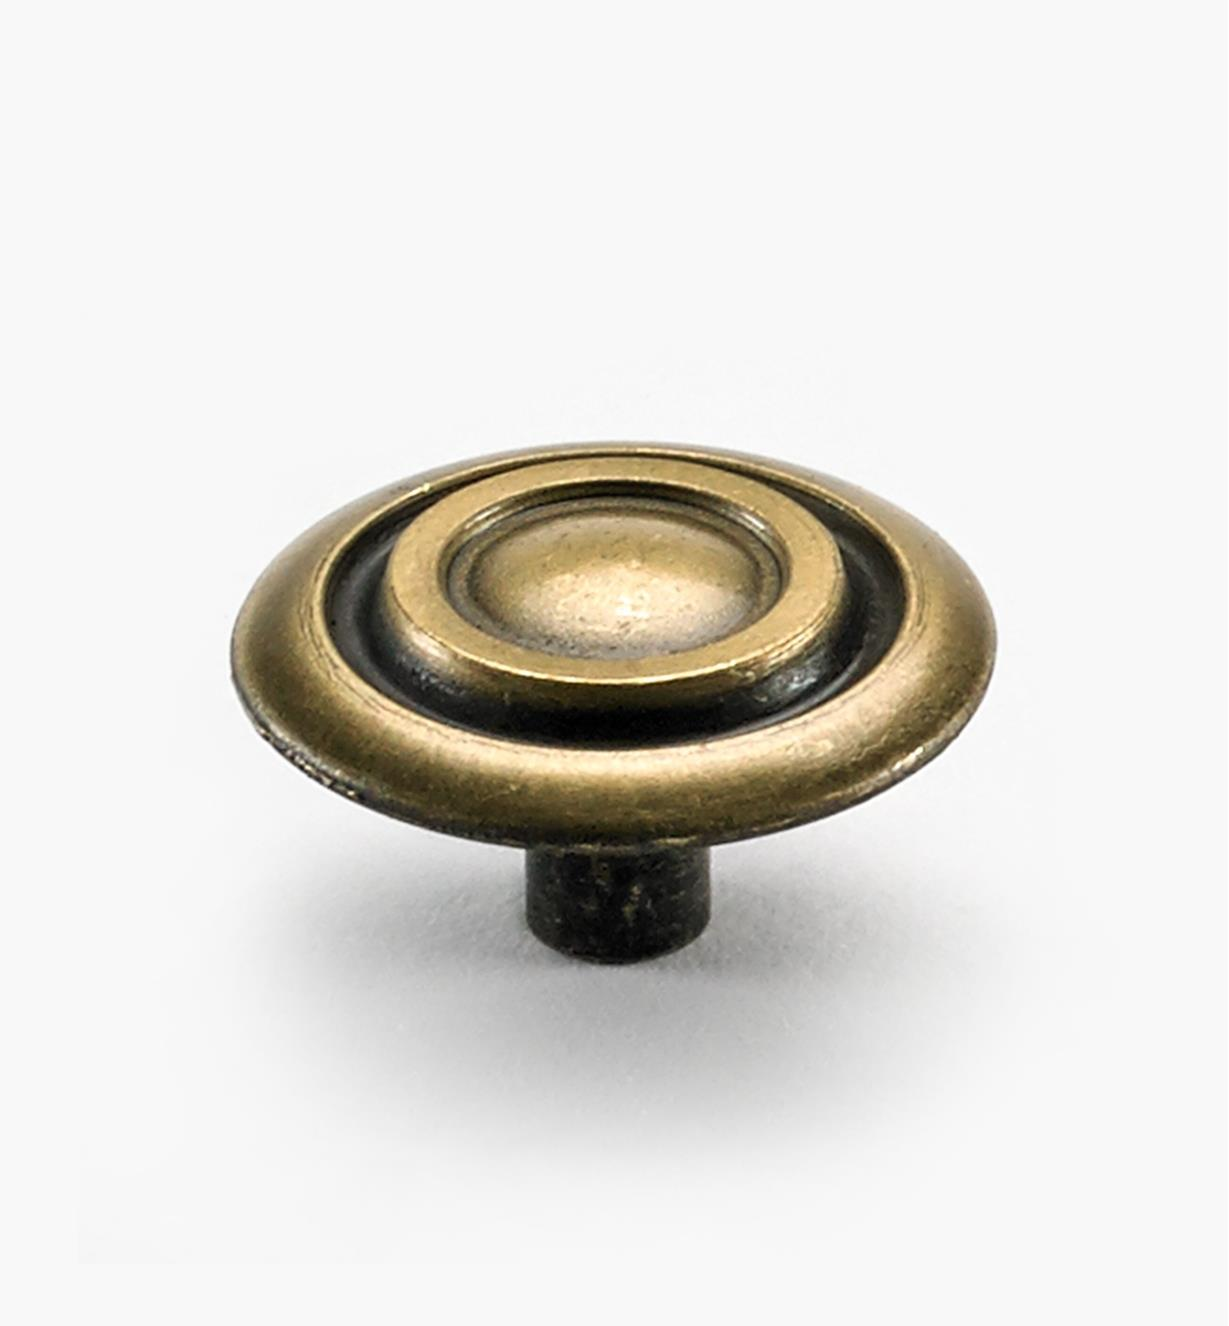 "03W2245 - 1 3/8"" x 3/4"" Antique Brass Cabinet Knob, ea."